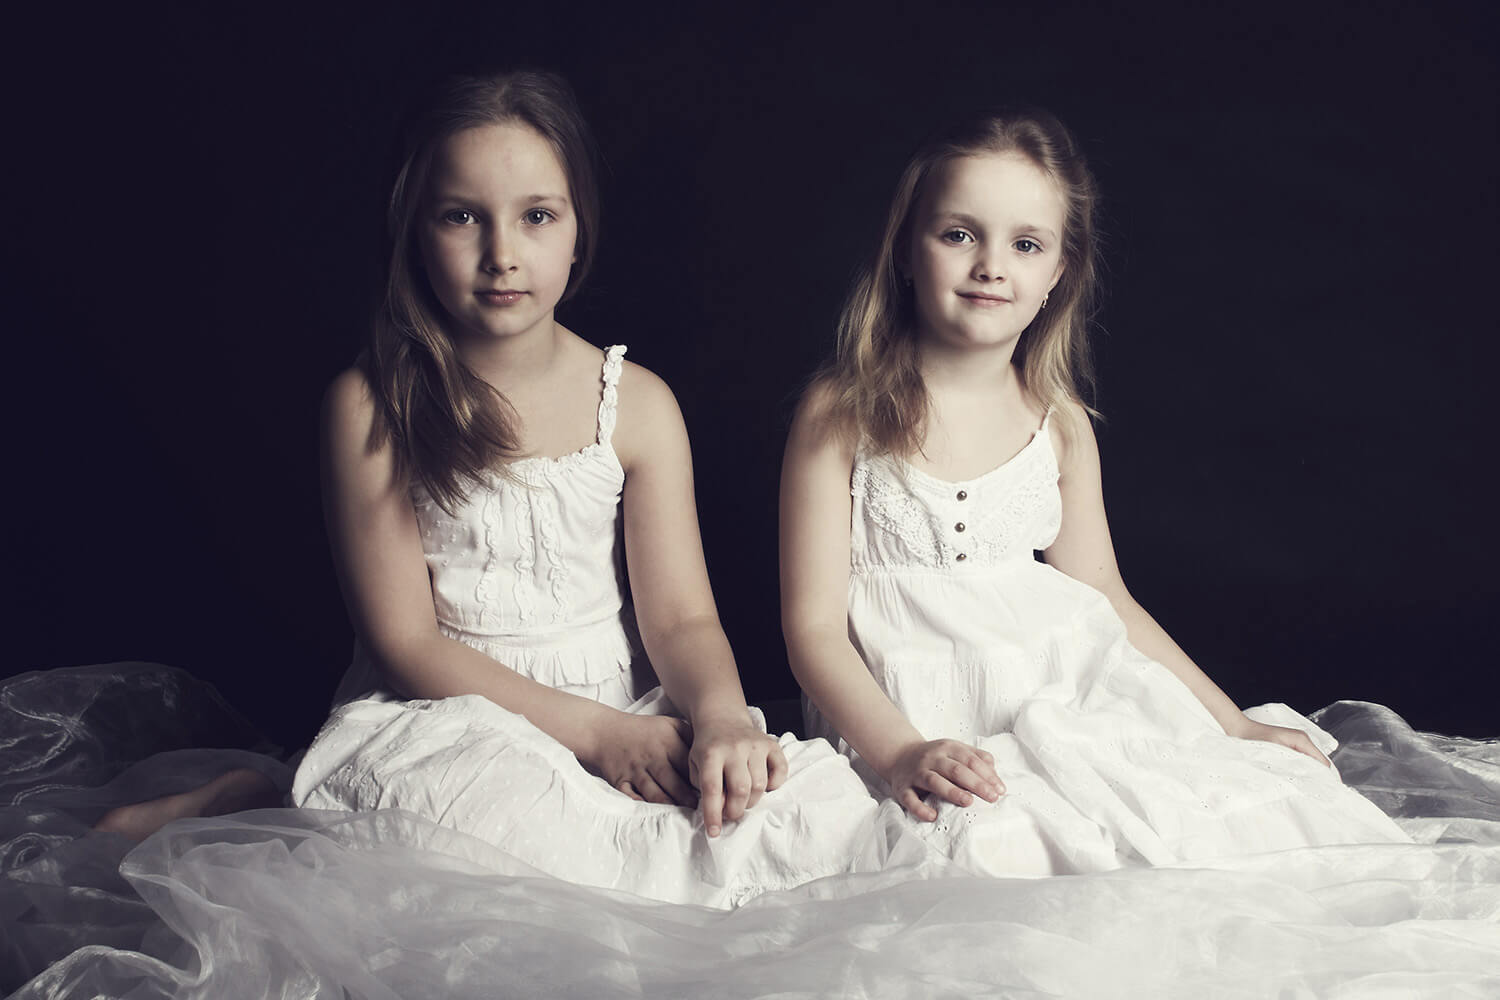 family photo of two sisters in white dresses on a dark background